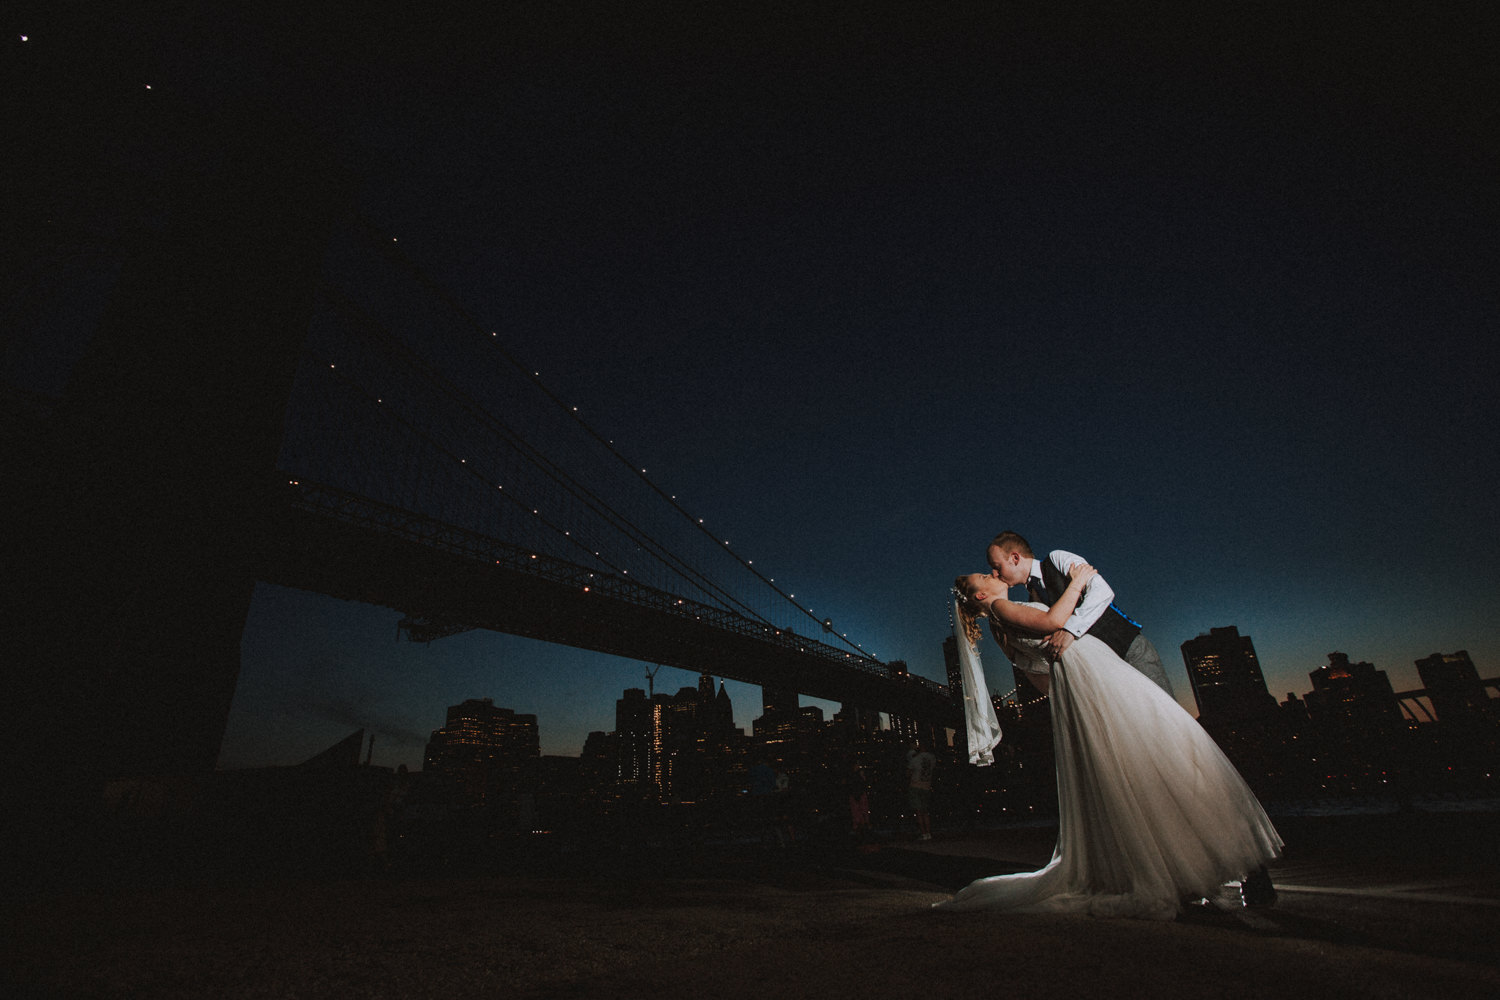 sheffield, yorkshire, new york destination wedding photographers78.jpg